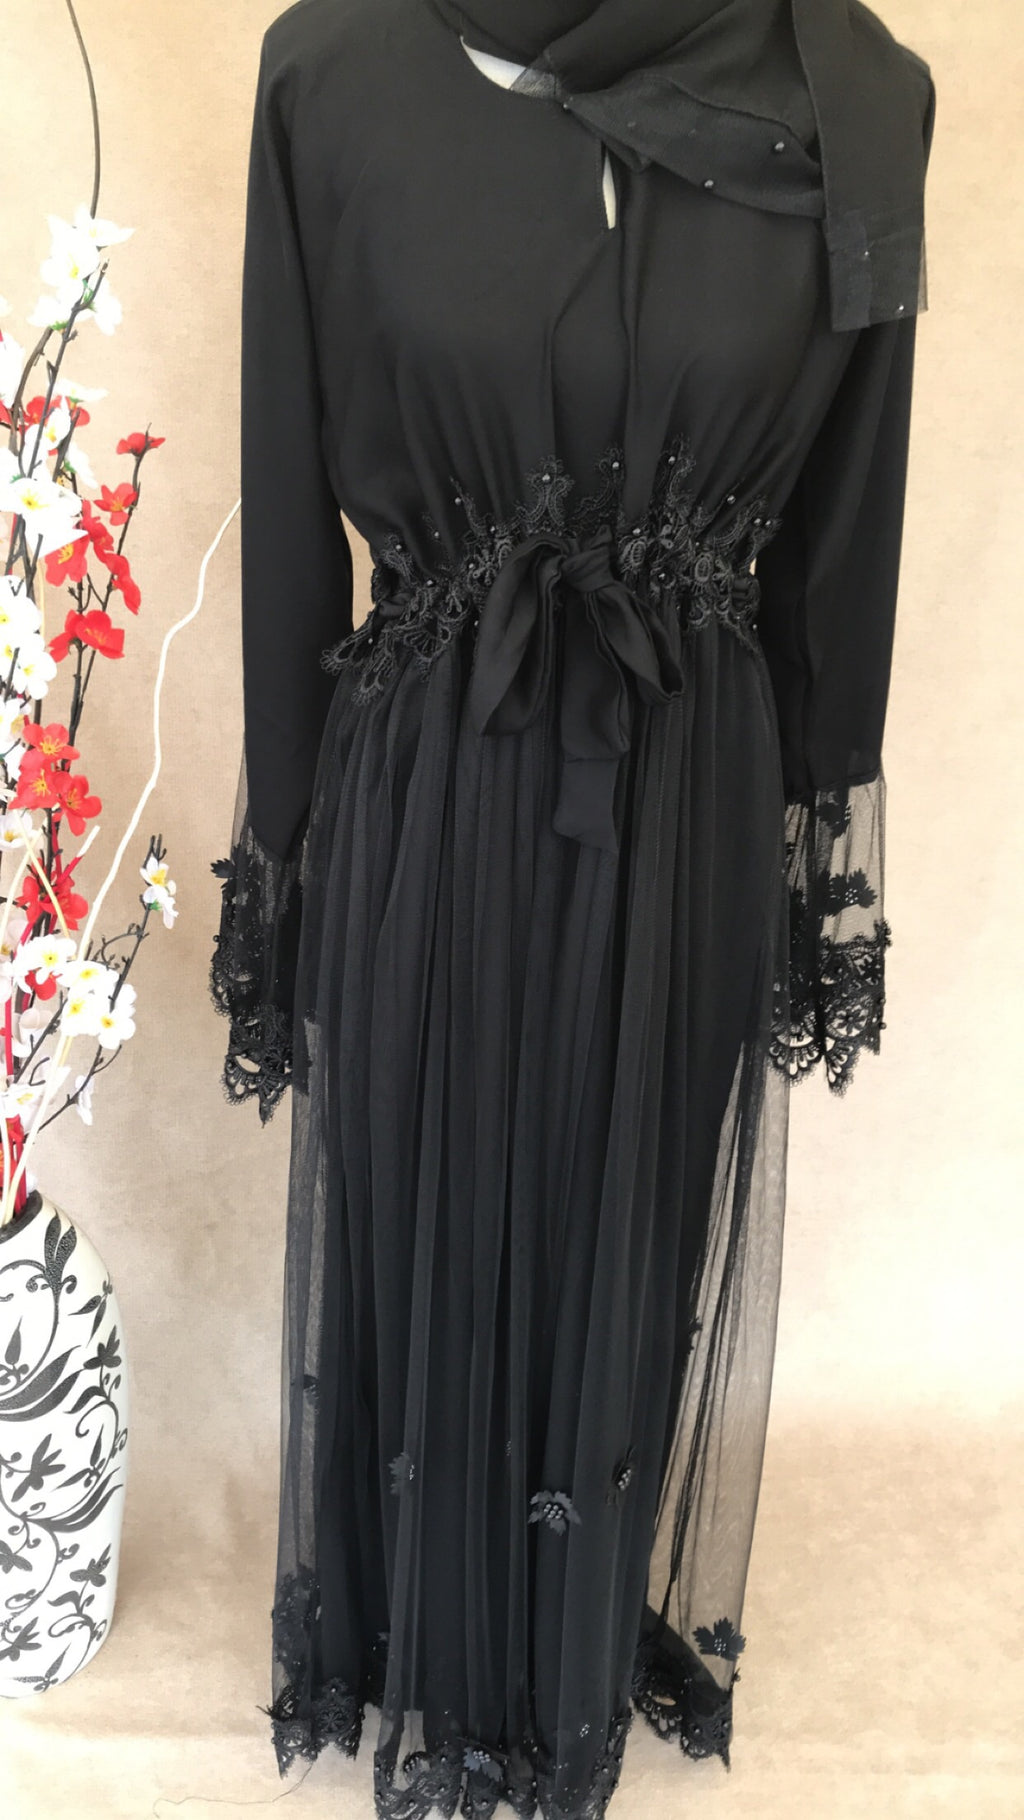 Black Embellished Abaya with Lace & Pearls